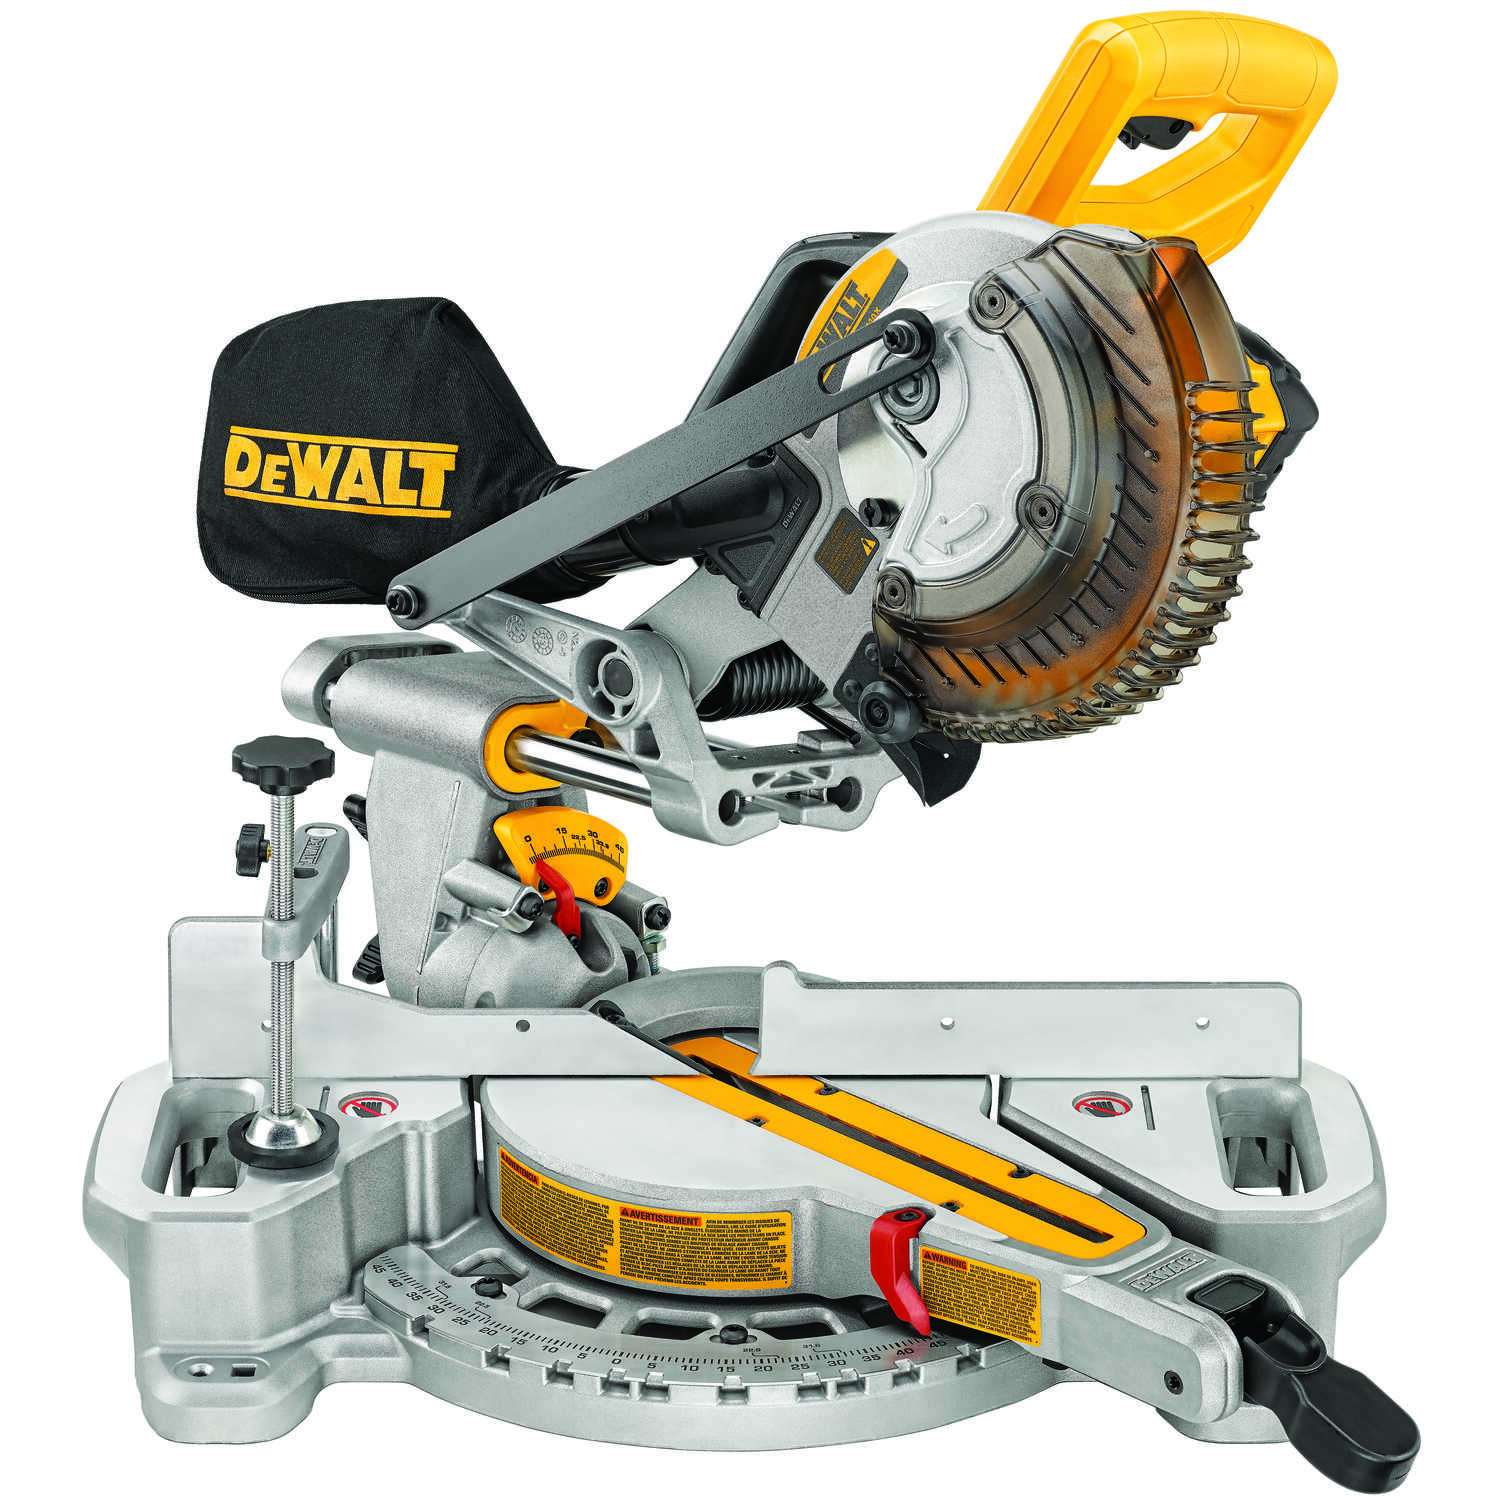 DeWalt 7-1/4 in. Cordless Miter Saw Kit 20 volt 20 amps 3,750 rpm